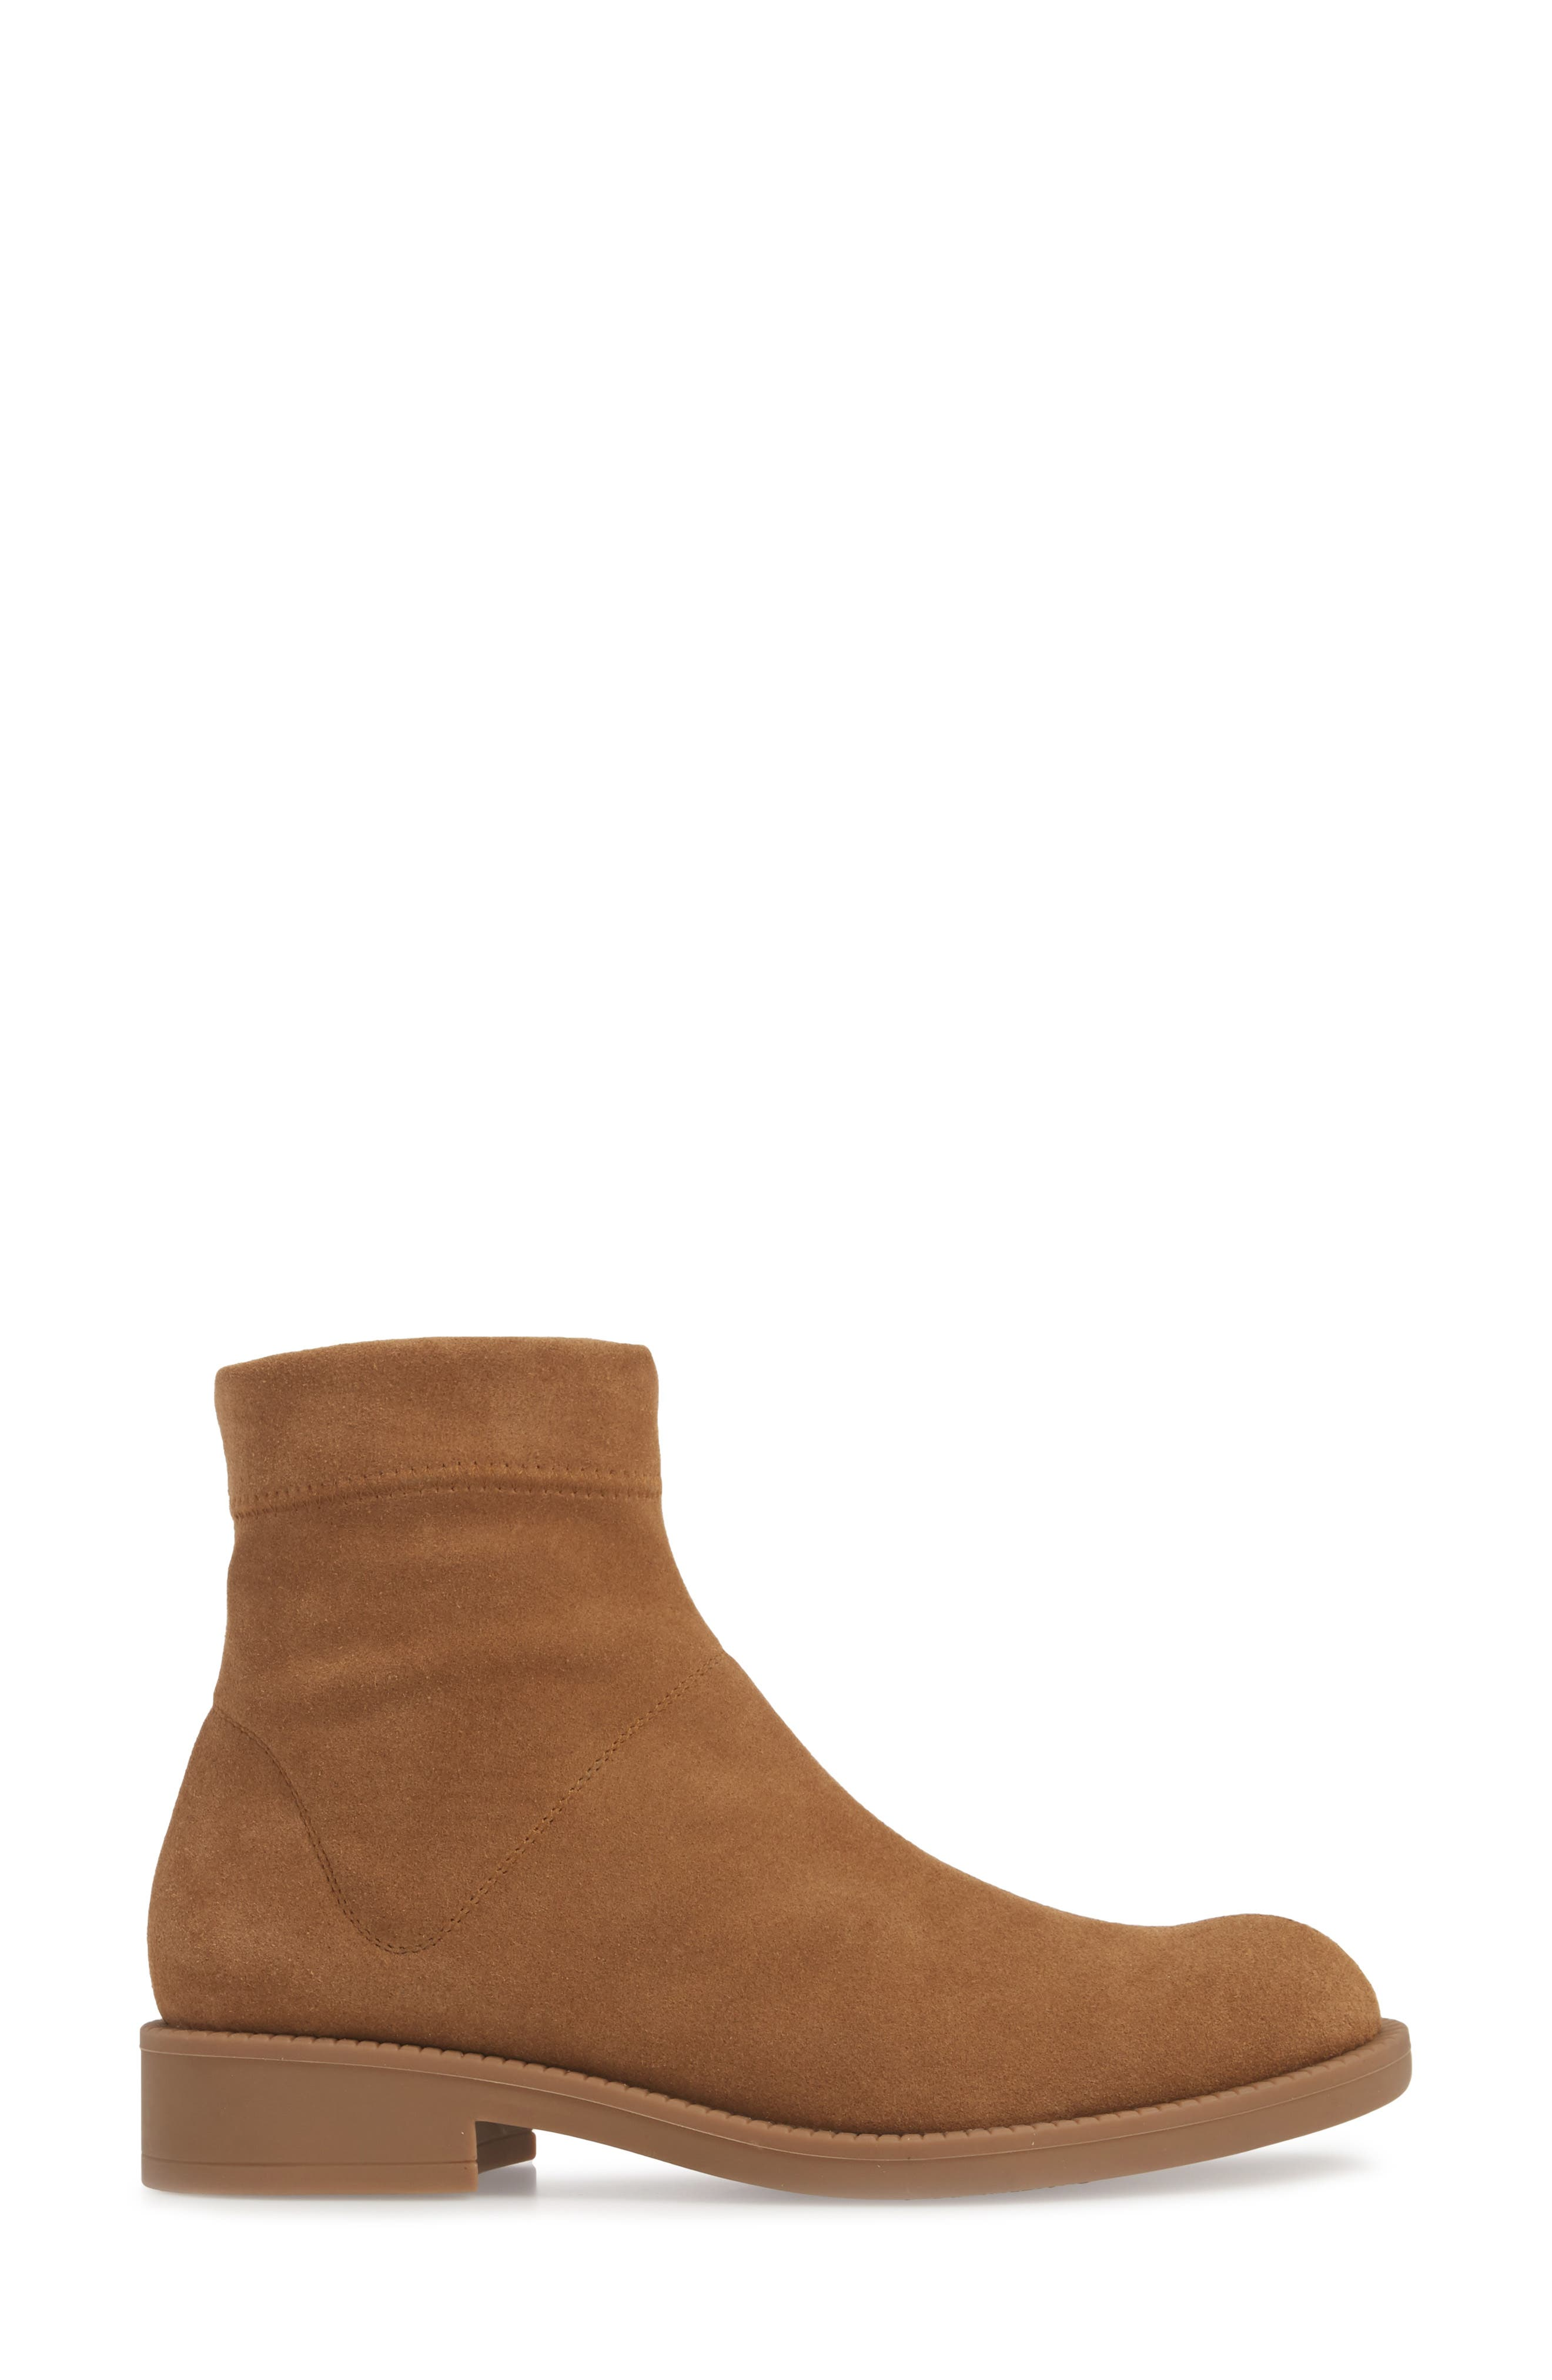 Kana Low Bootie,                             Alternate thumbnail 3, color,                             TOBACCO STRETCH  SUEDE